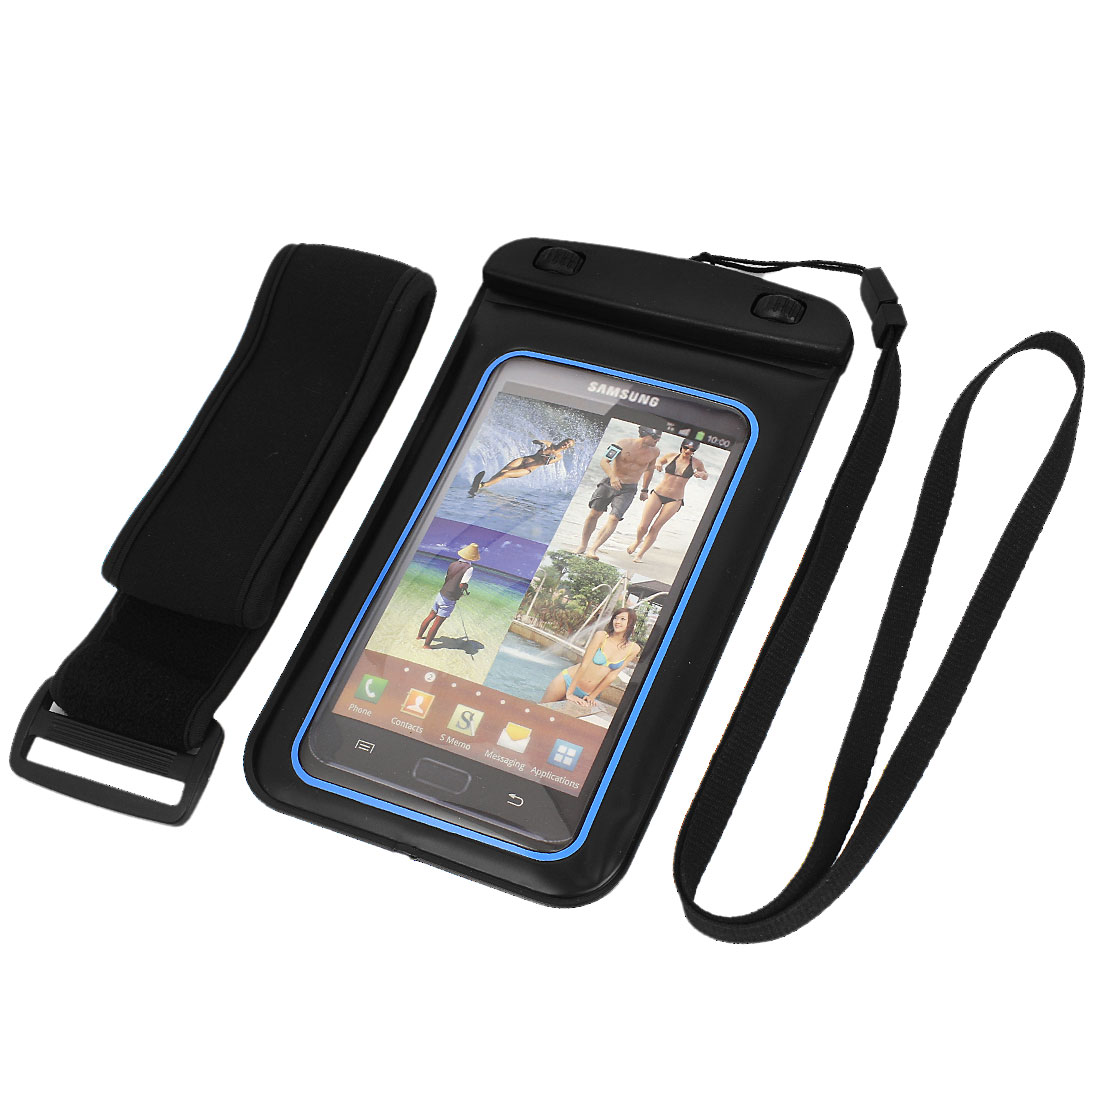 "Waterproof Underwater Case Dry Bag Skin Cover Pouch for 5.5"" Cell Phone"